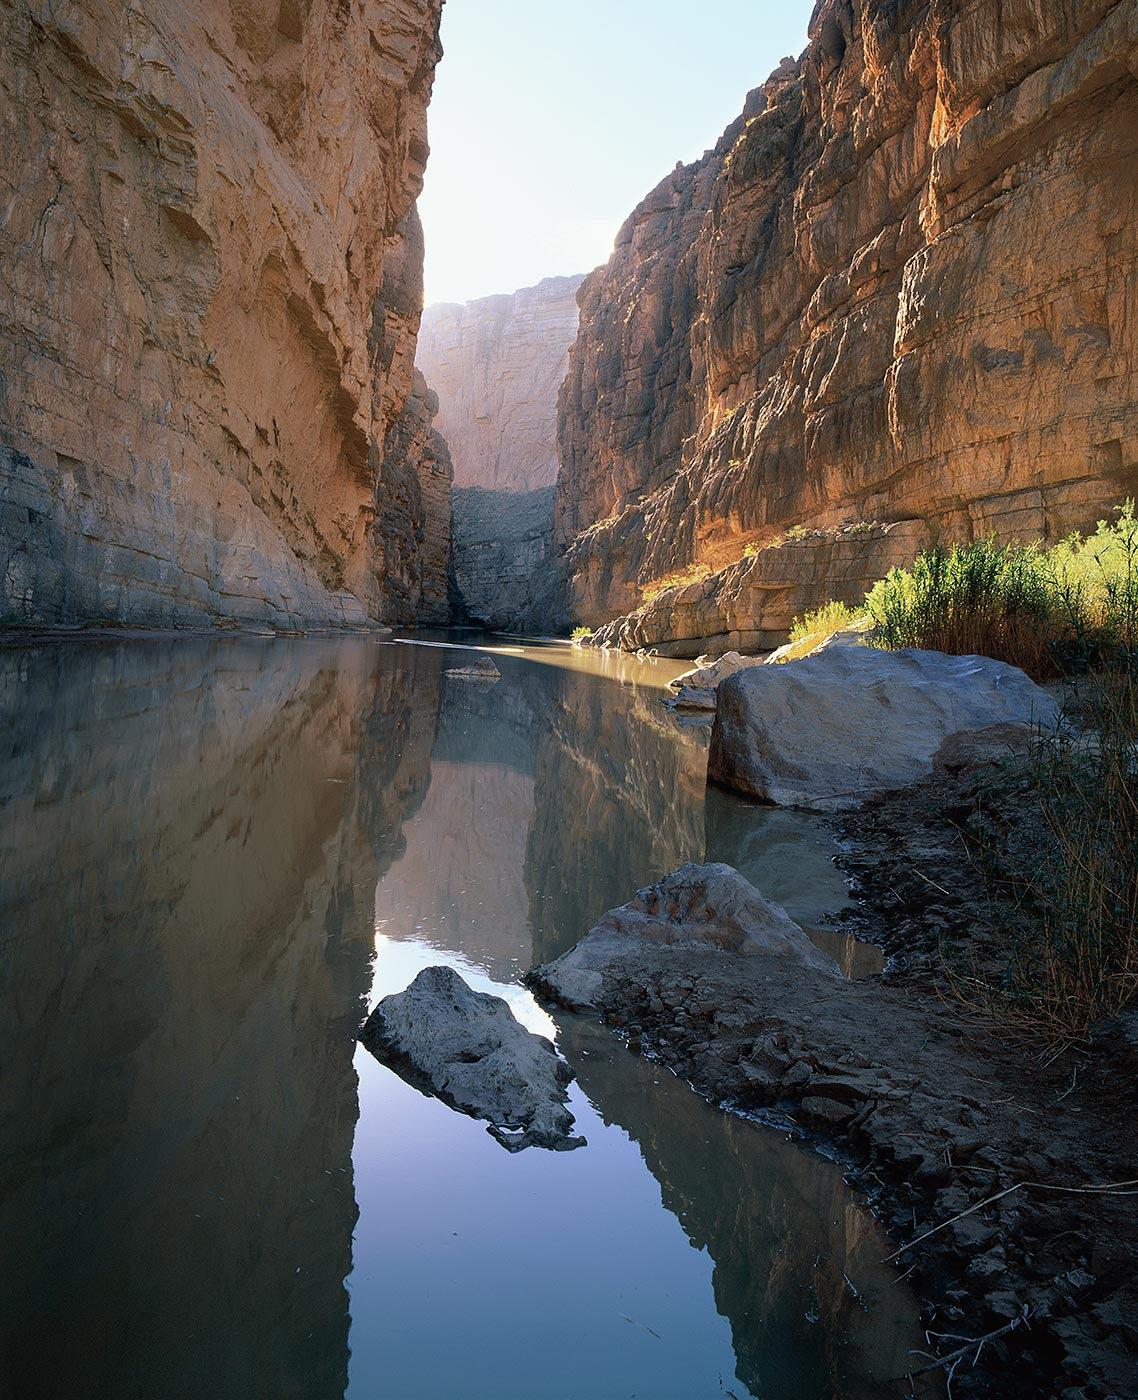 204 Reflections in the Rio Grande, Big Bend National Park, Texas